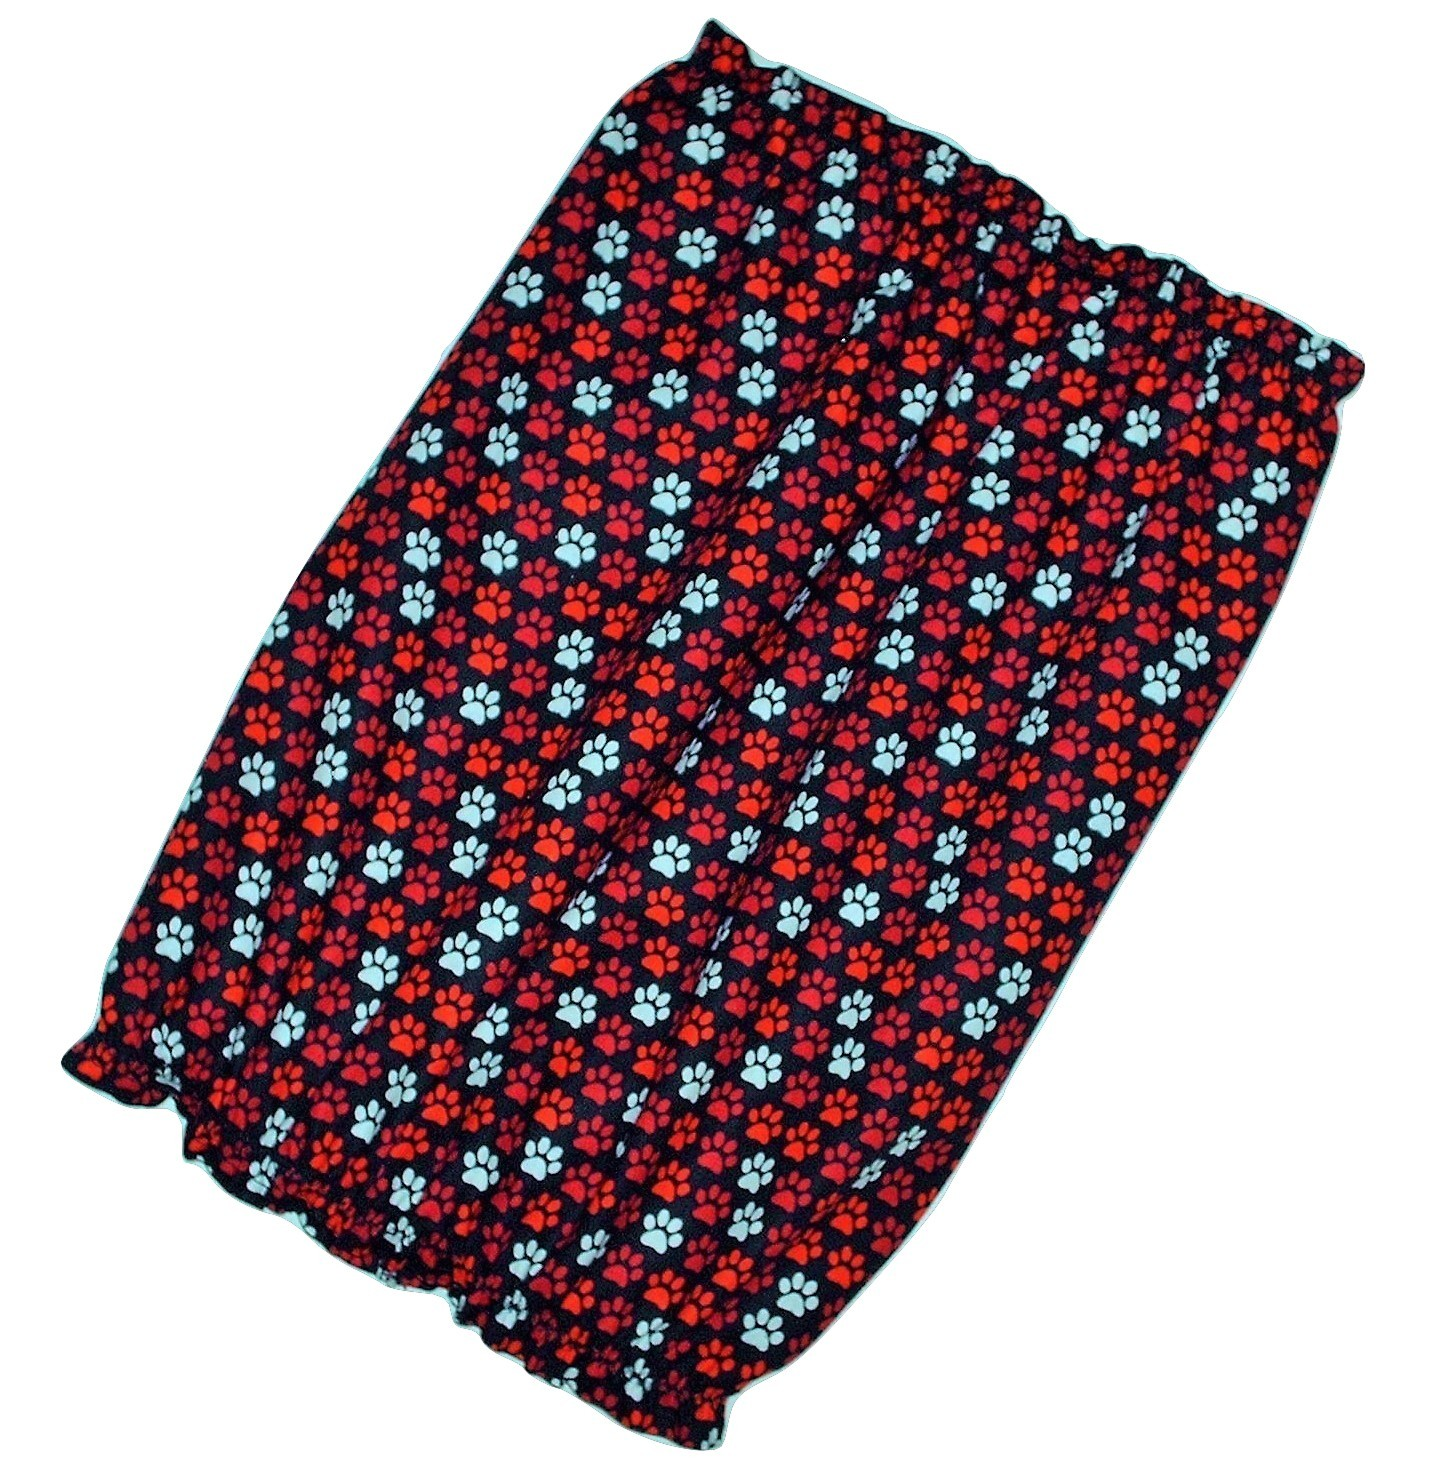 Dog Snood Black with Red White Paw Prints Cotton by Howlin Hounds Puppy SHORT